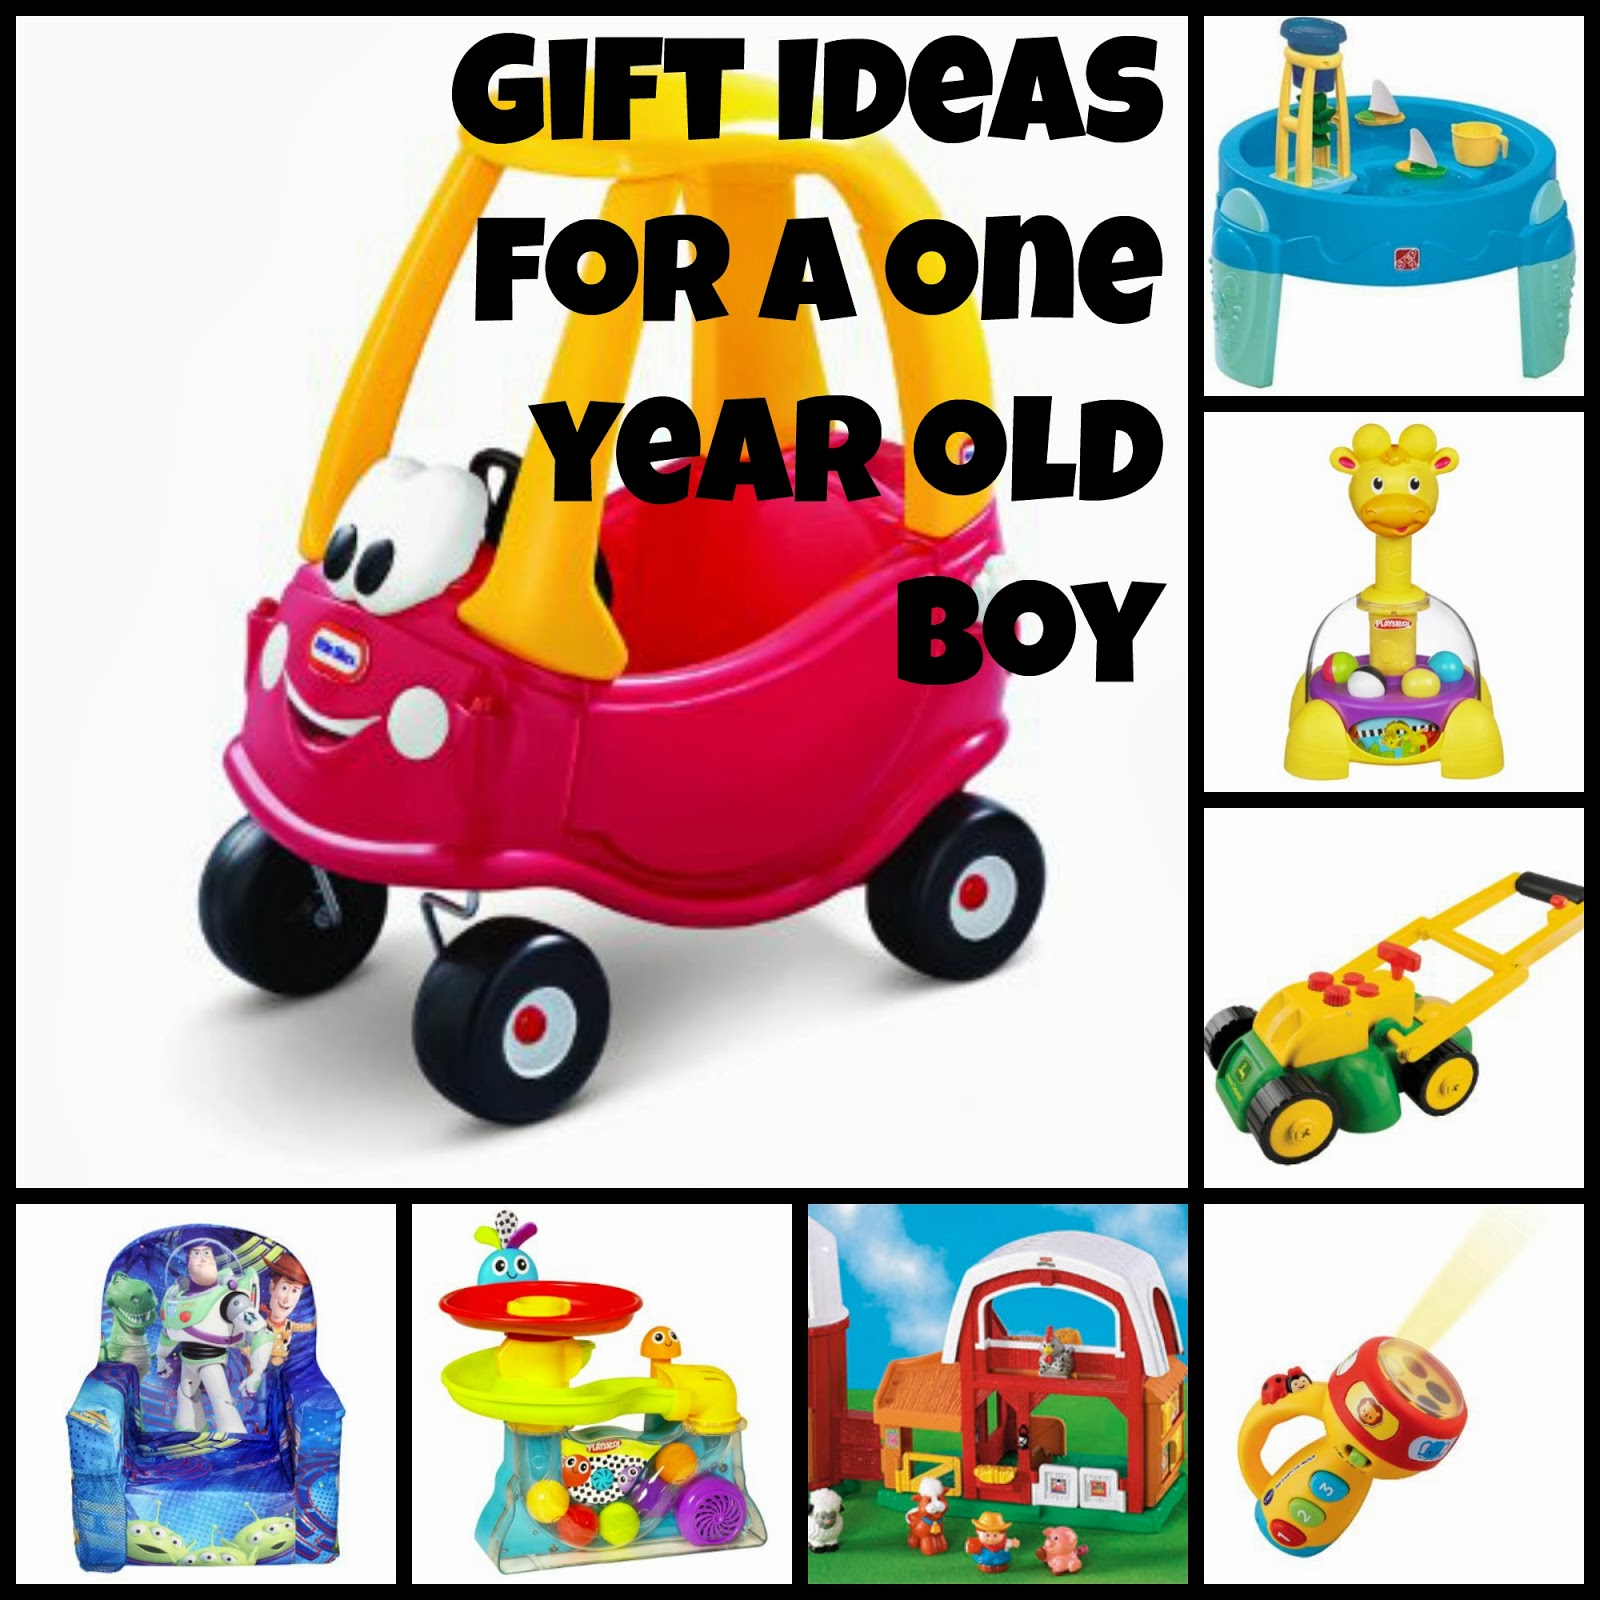 Best Christmas Gift For A 1 Year Old Boy - Gifts For 18 Year Old ...